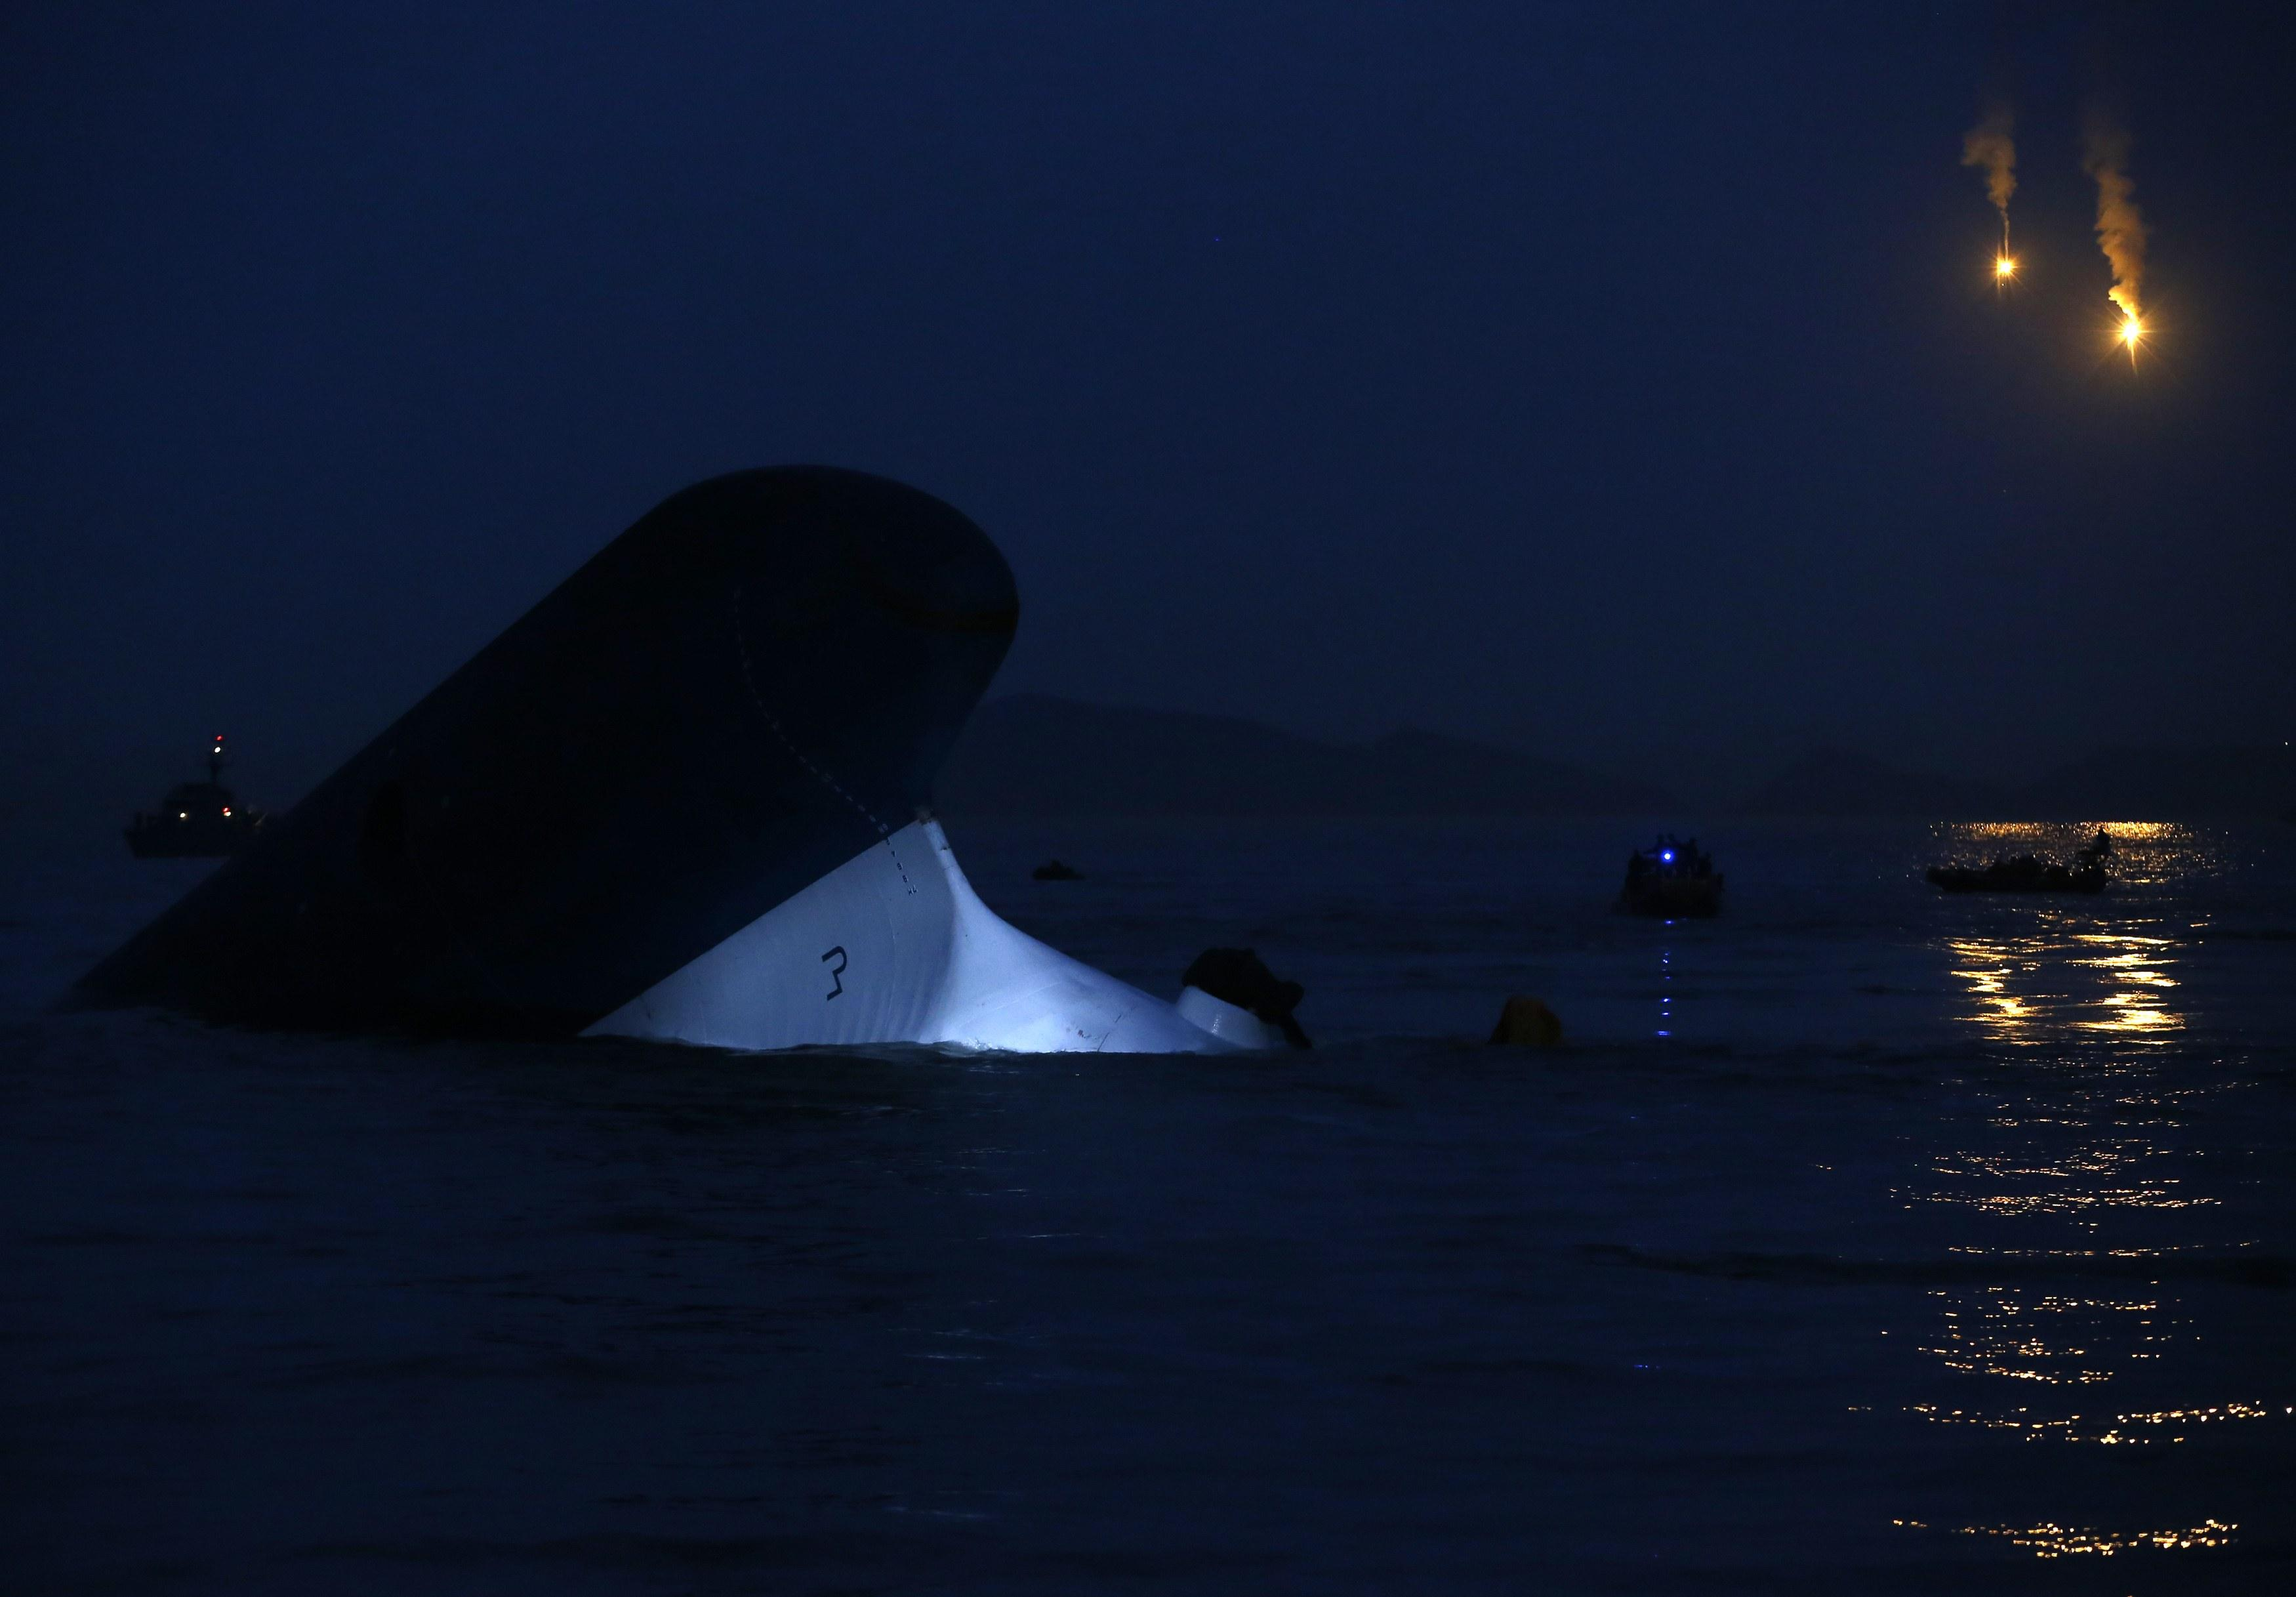 South Korea Ferry - Sewol Sinking Deeper